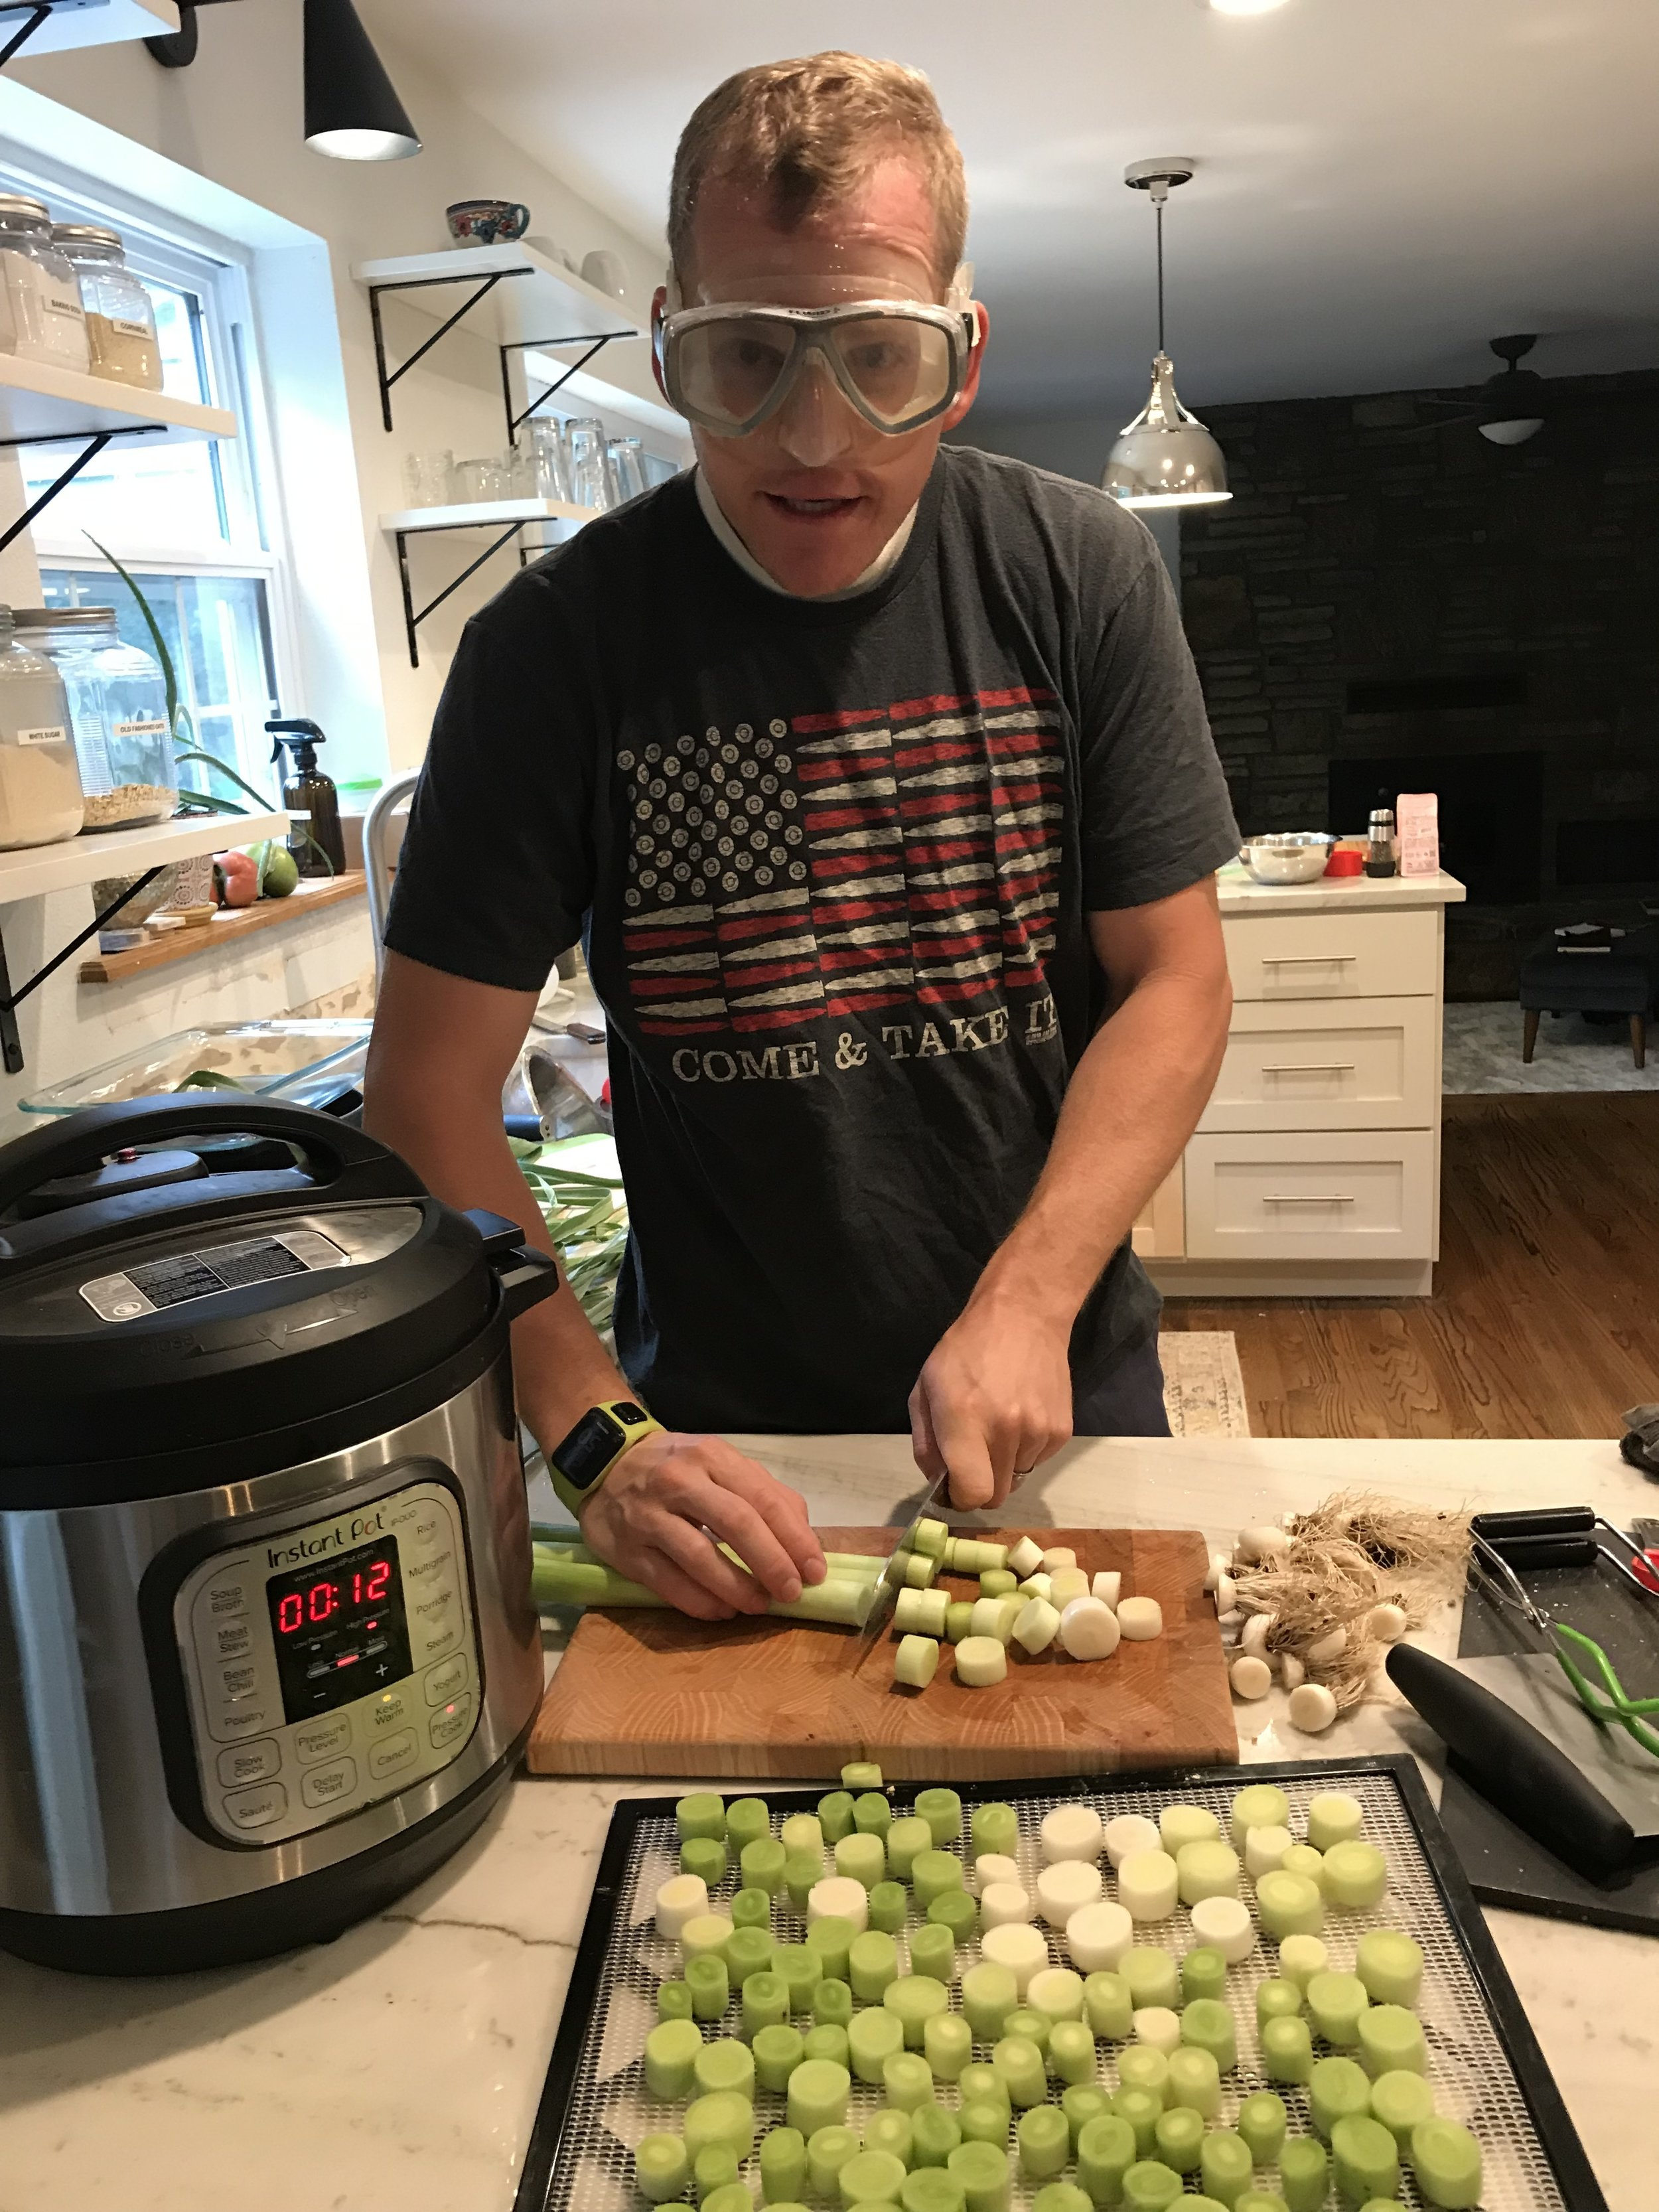 I hope Cameron doesn't see this picture- he might want me to take it off the blog! Haha! He was helping cut leeks for the dehydrator and man they sting your eyes so much when they are fresh. Swim goggles do the trick to keep the tears at bay!